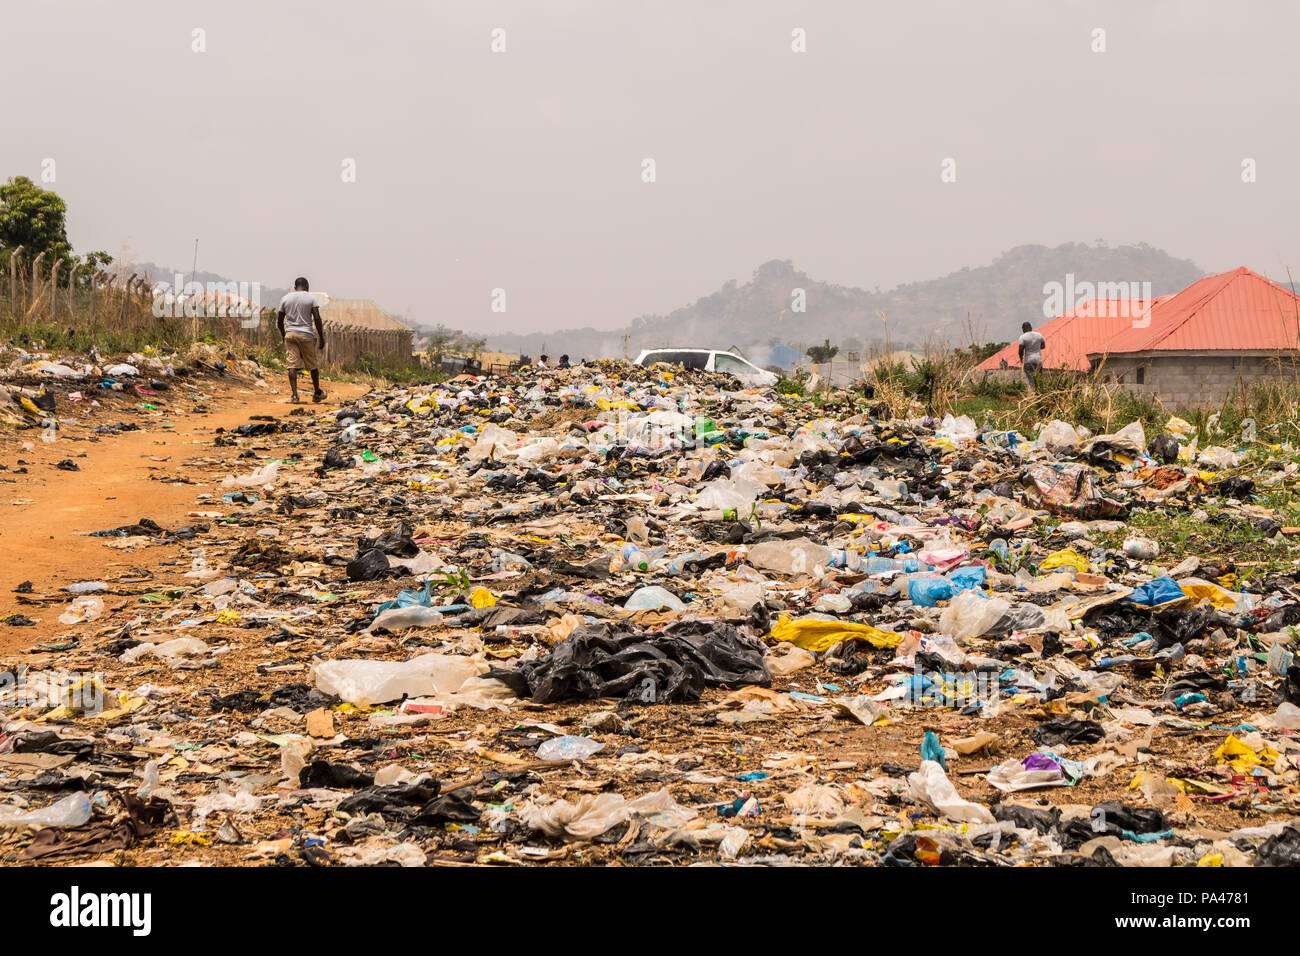 A pile of rubber bags wasteland causing pollution in the city - Stock Image